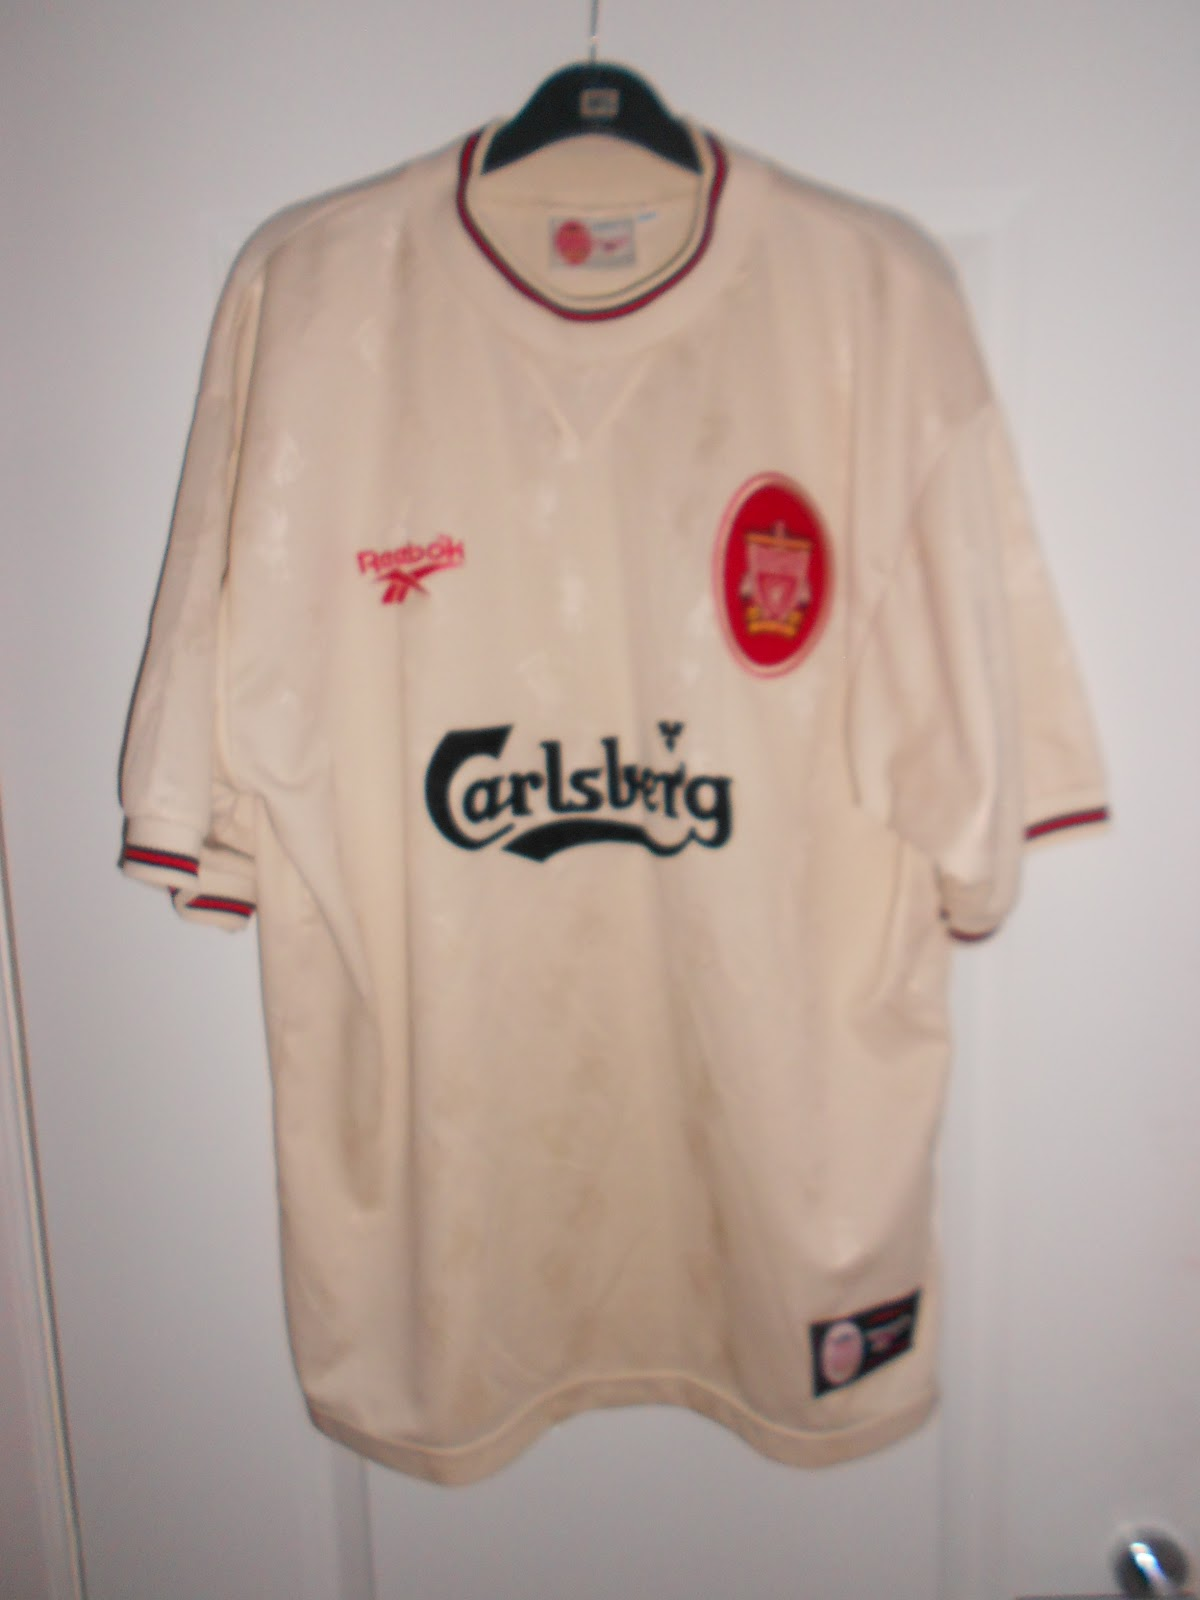 42c4bcd2d7b My collection of football shirts  Liverpool Away 1996-1997